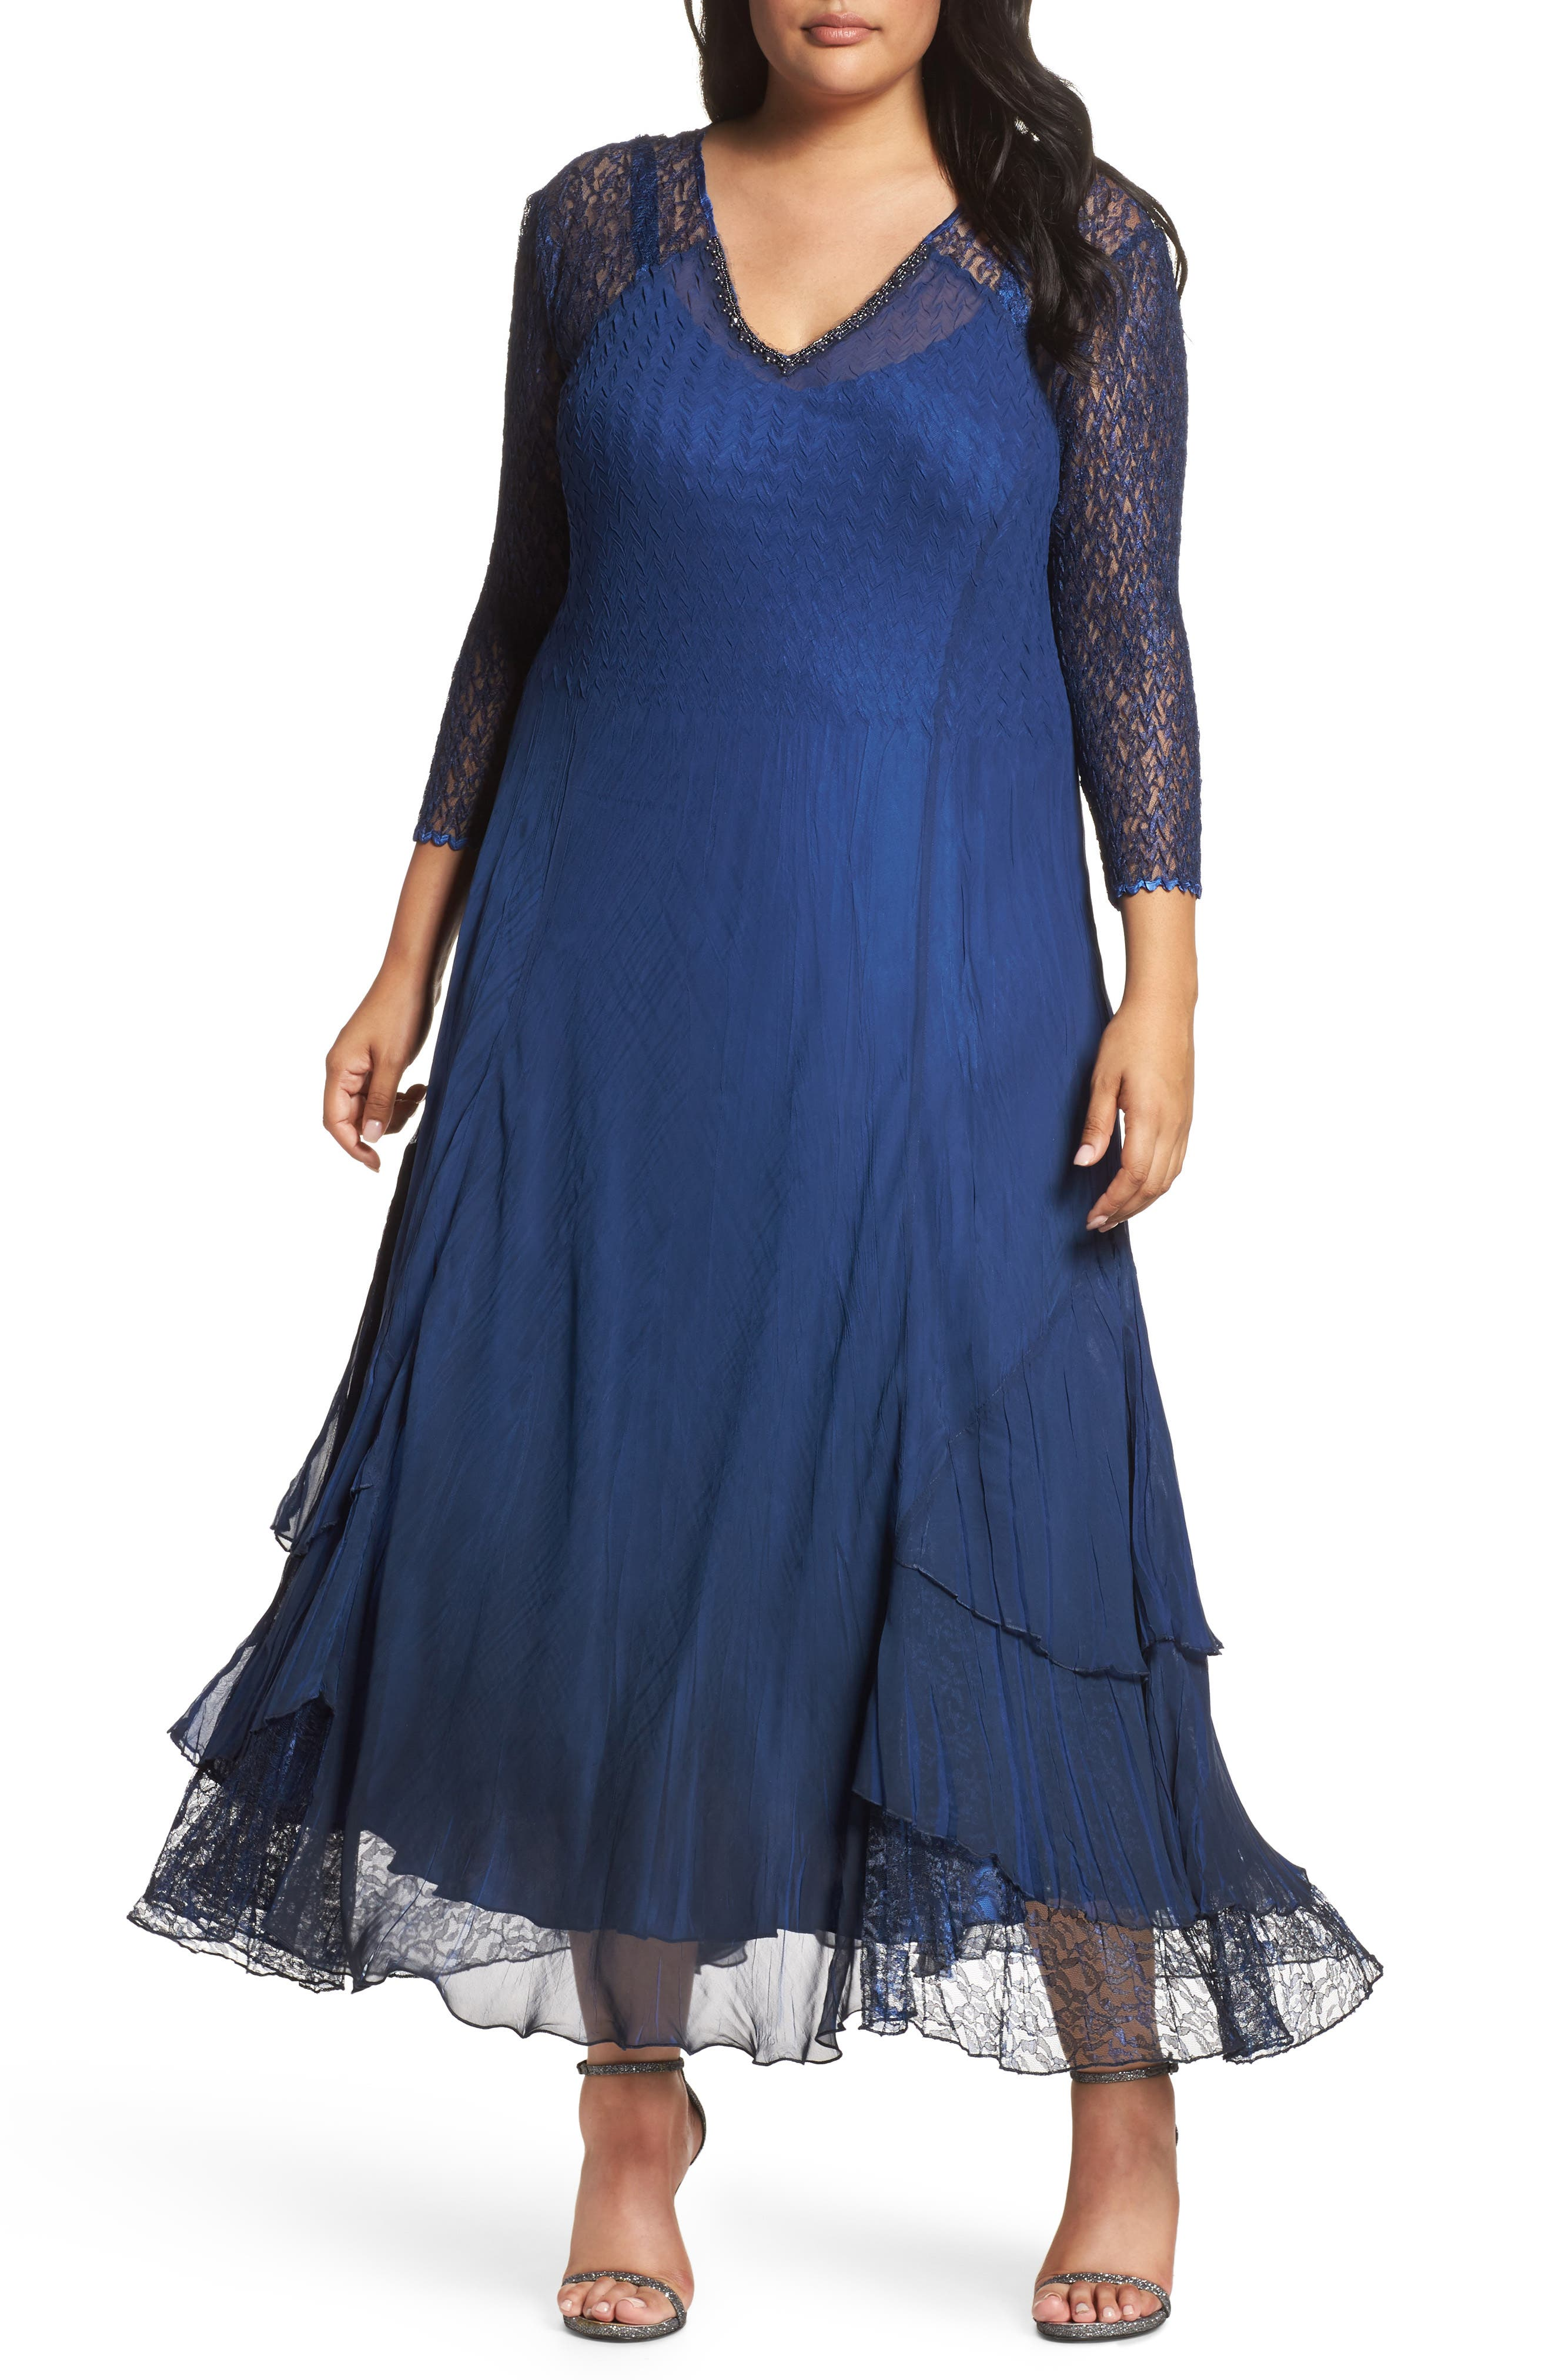 Main Image - Komarov Chiffon Tiered A-Line Dress (Plus Size)